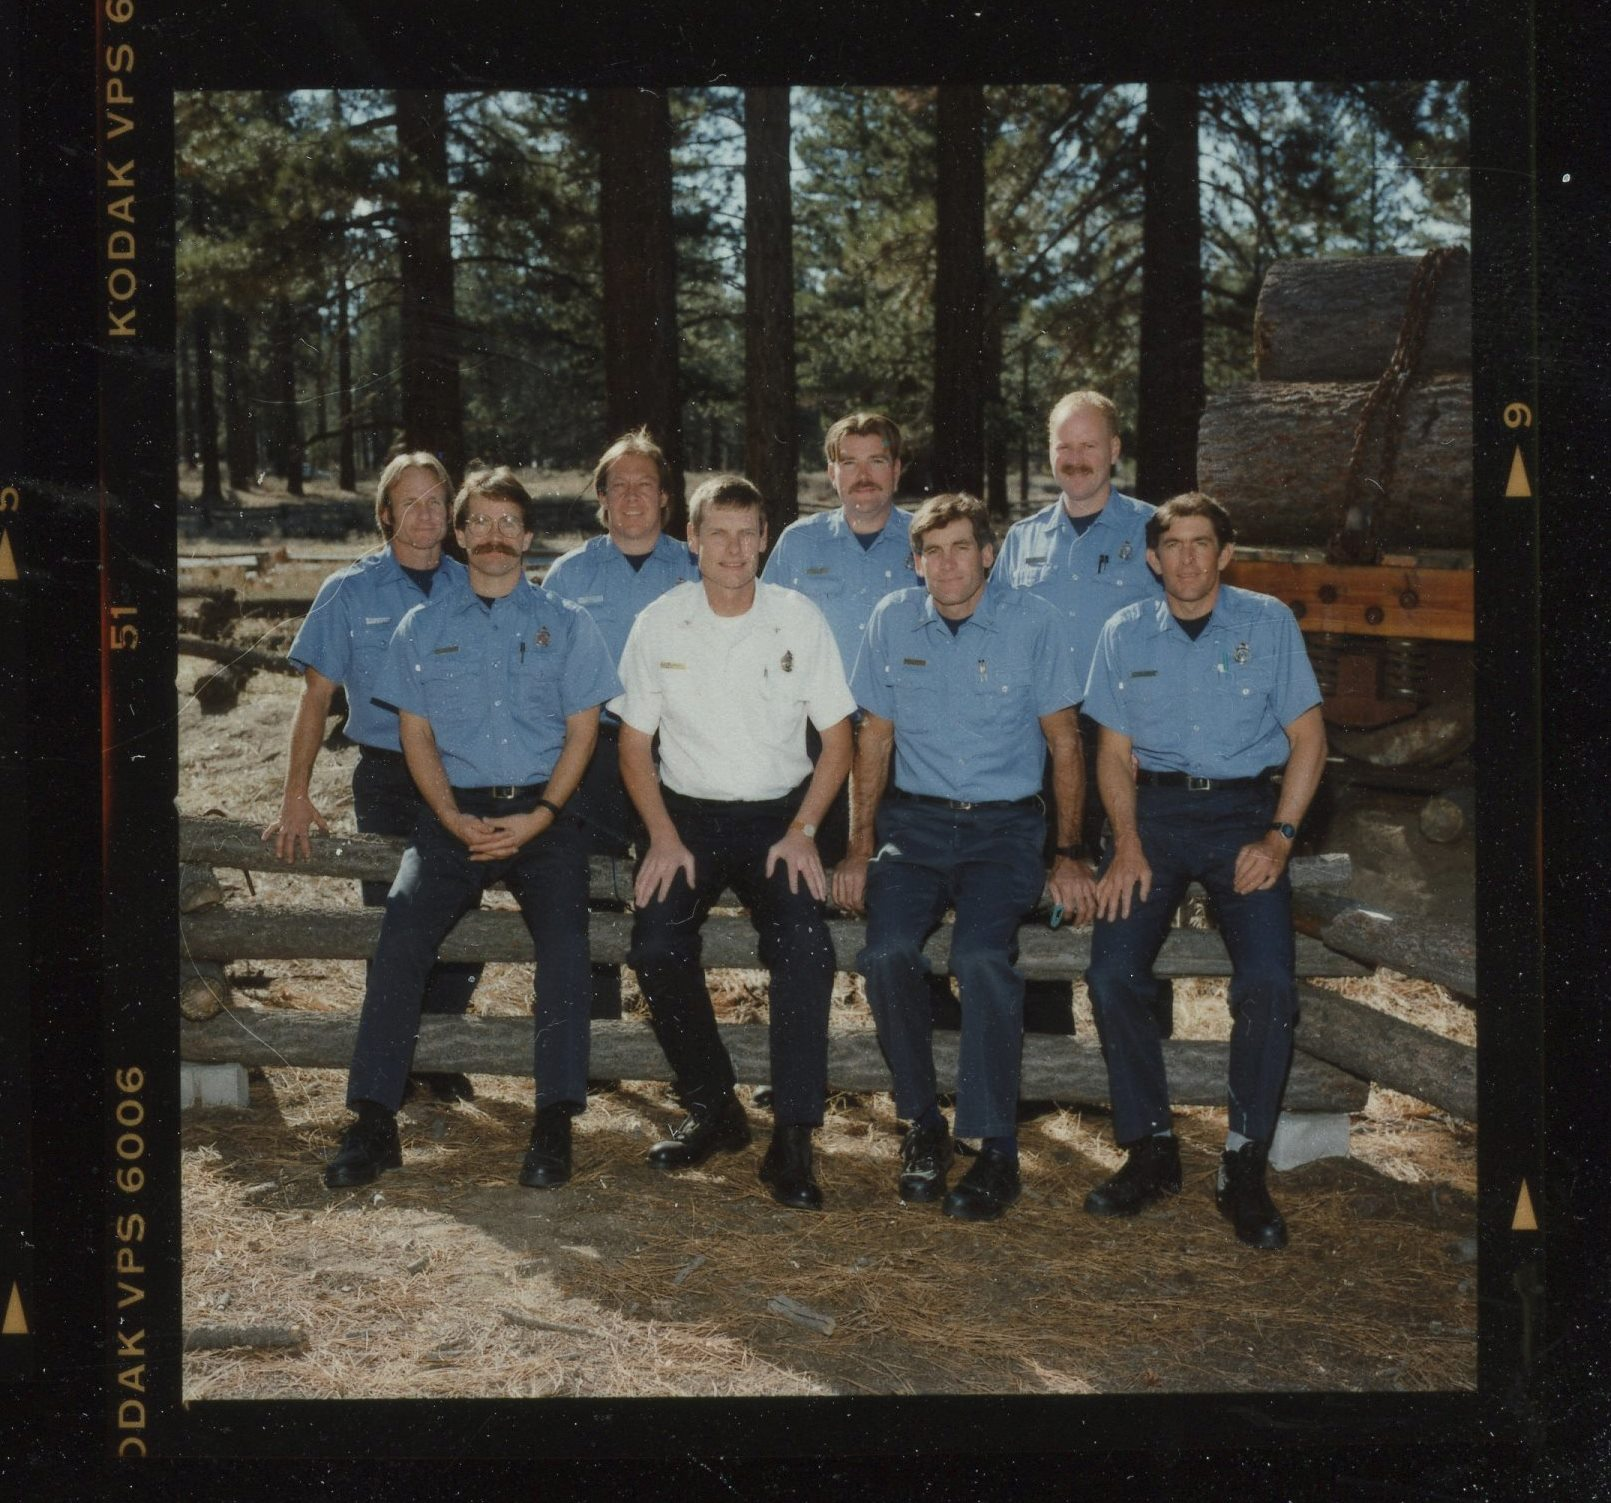 1994 Fire Department cropped 2.jpg